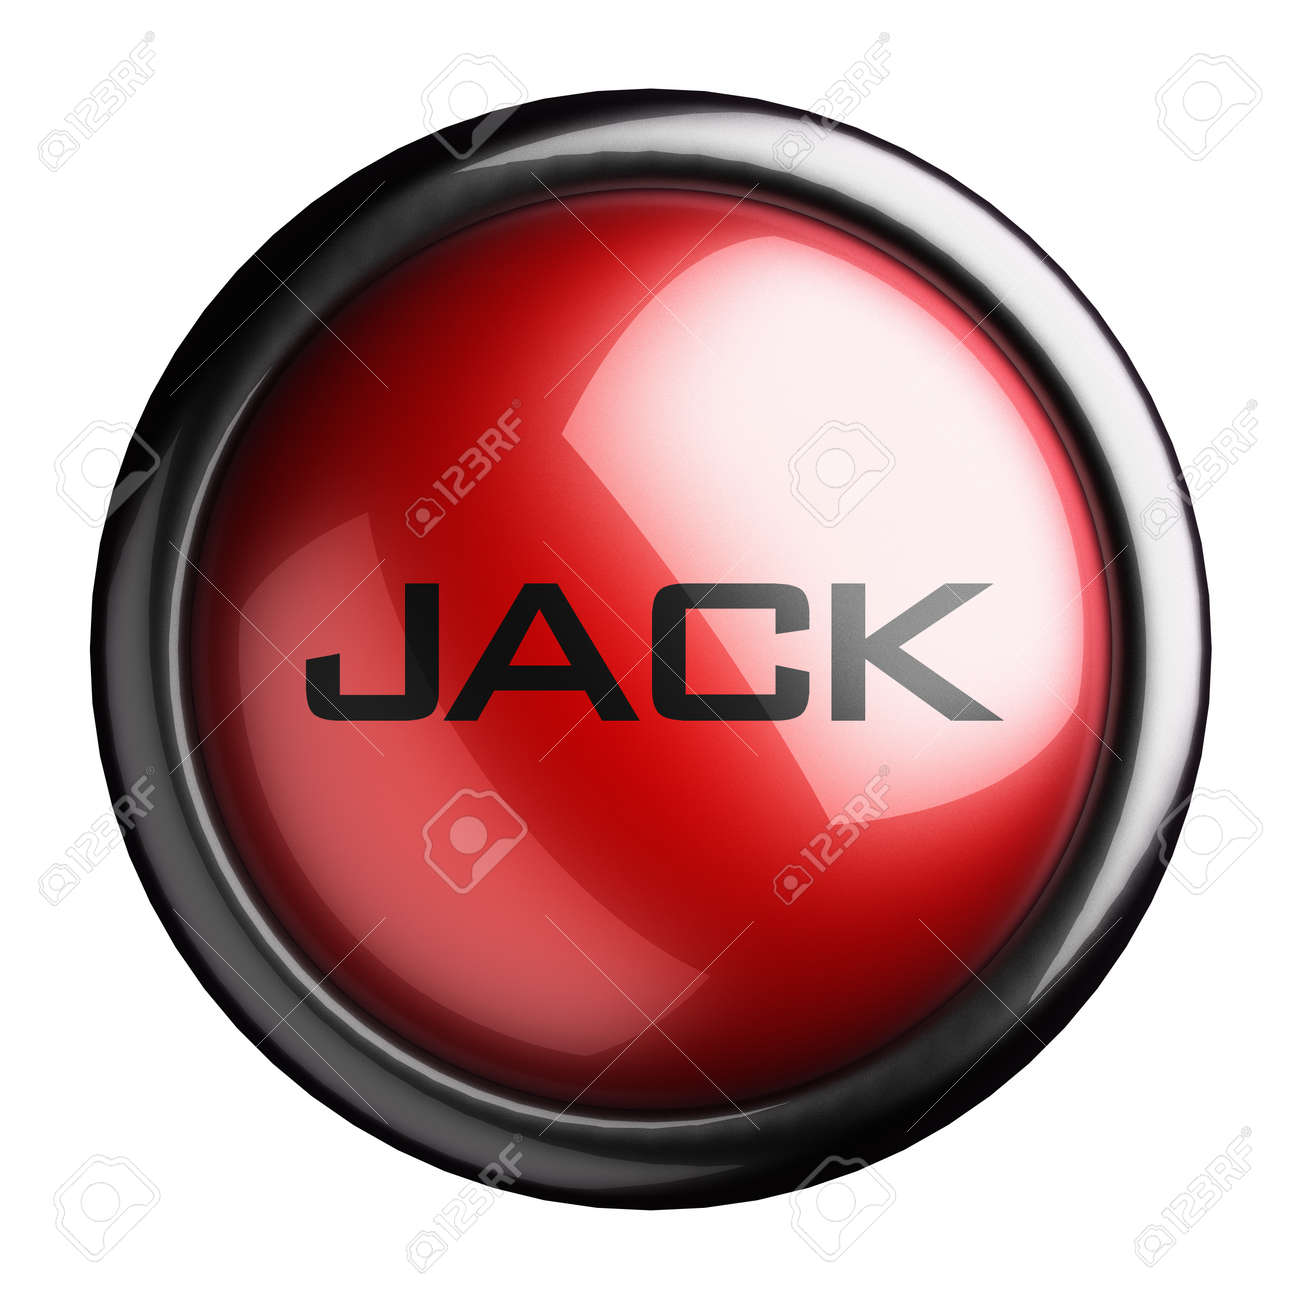 Word on the button Stock Photo - 15610226